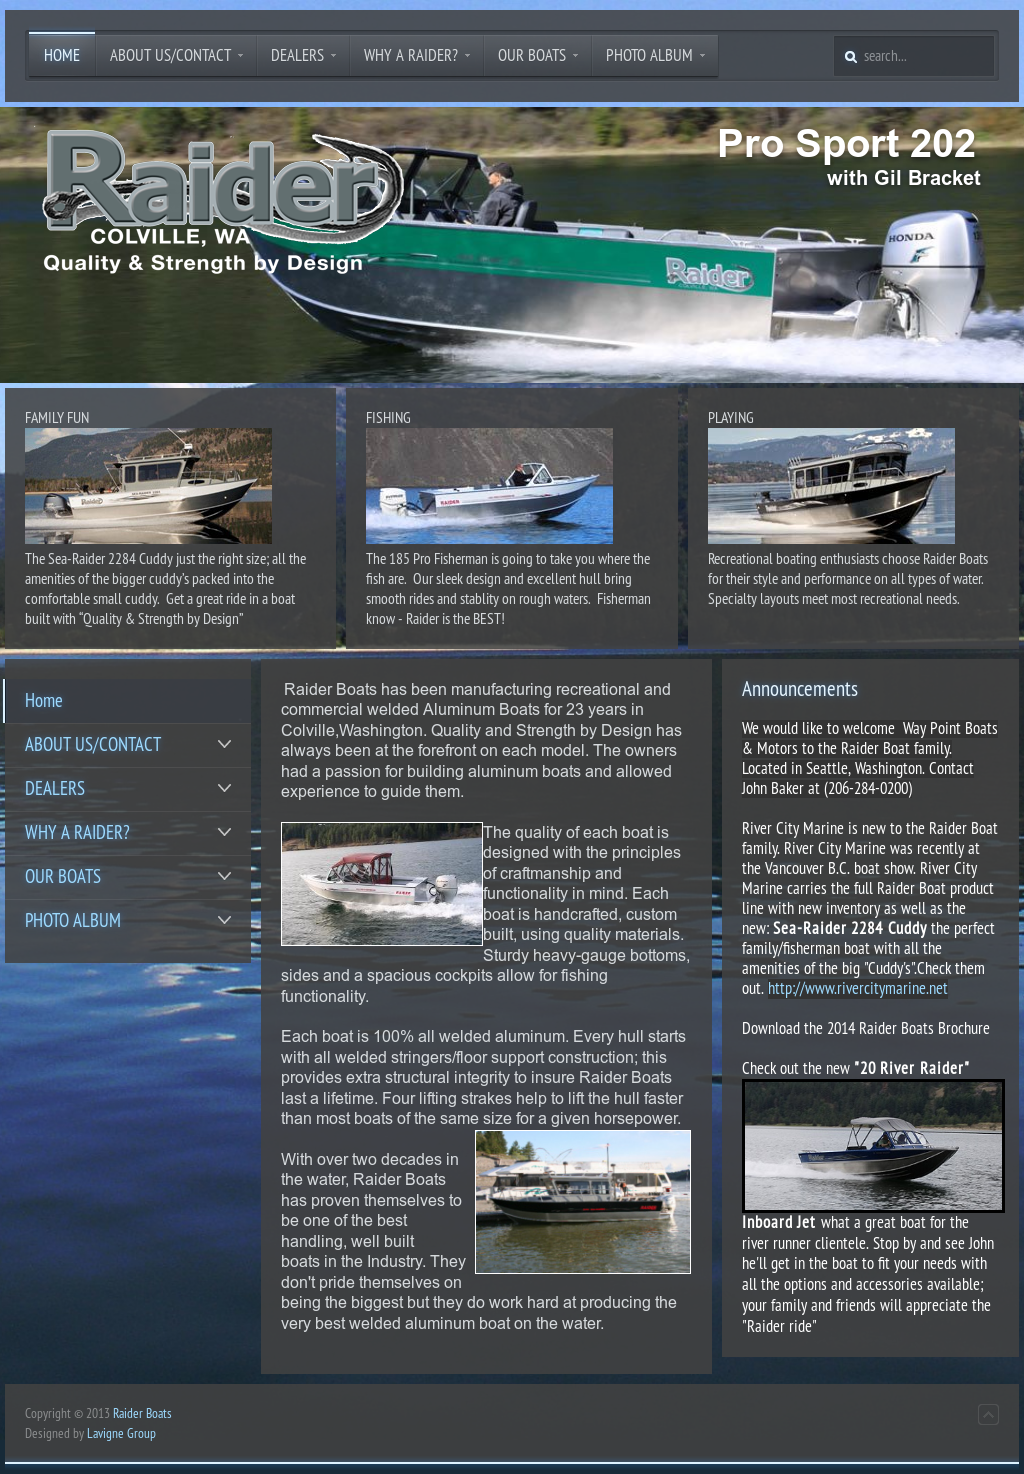 Raider Boats Competitors, Revenue and Employees - Owler